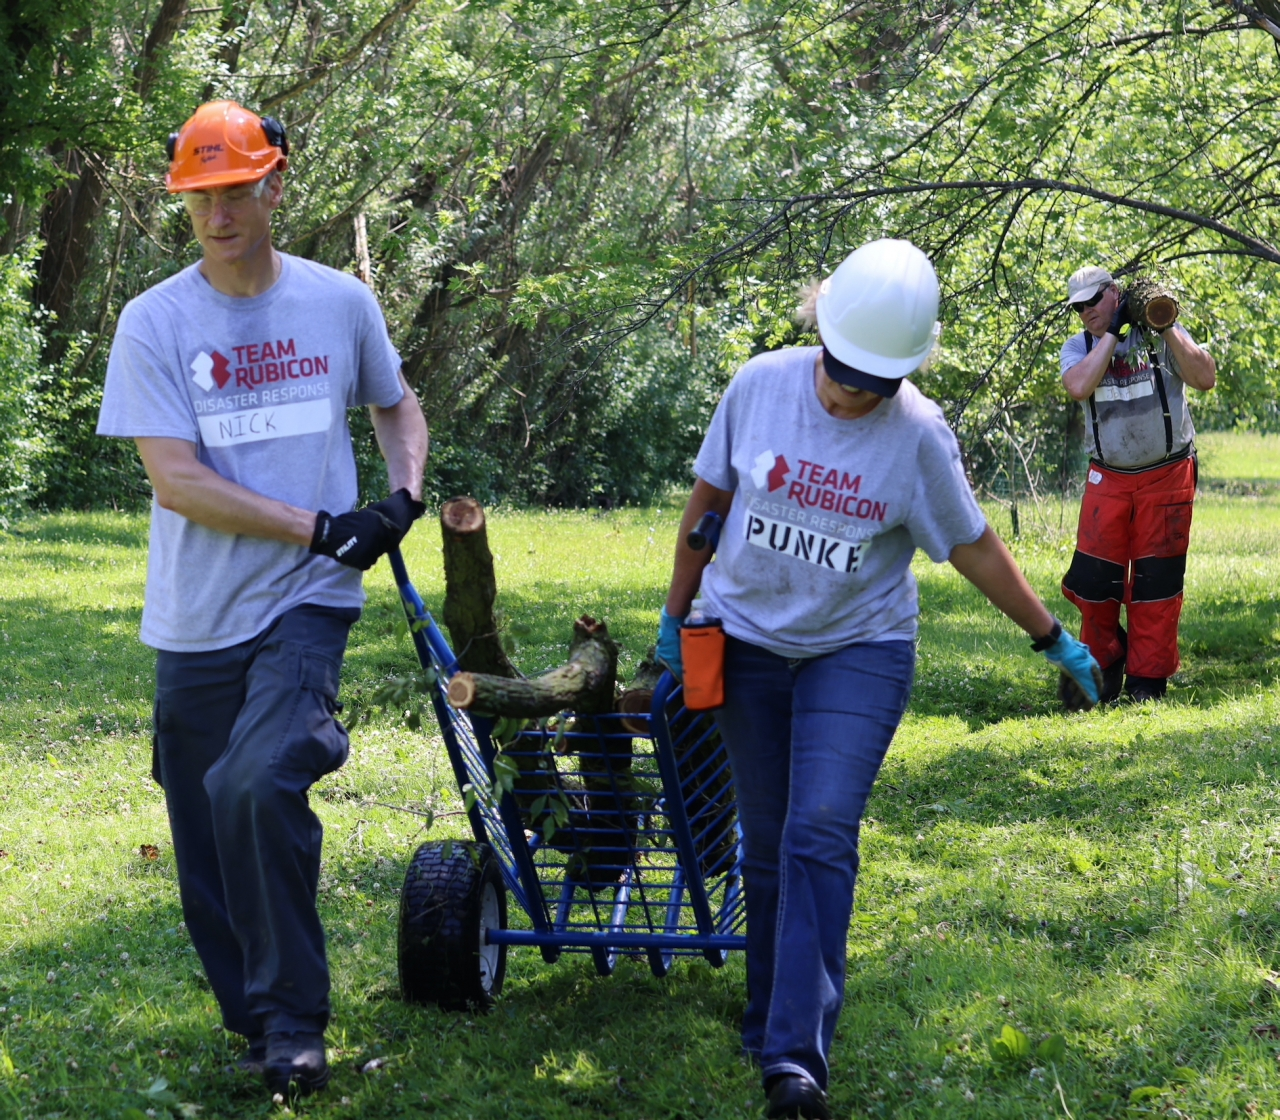 Volunteers cleared tree debris and cut down trees that posed a safety concern